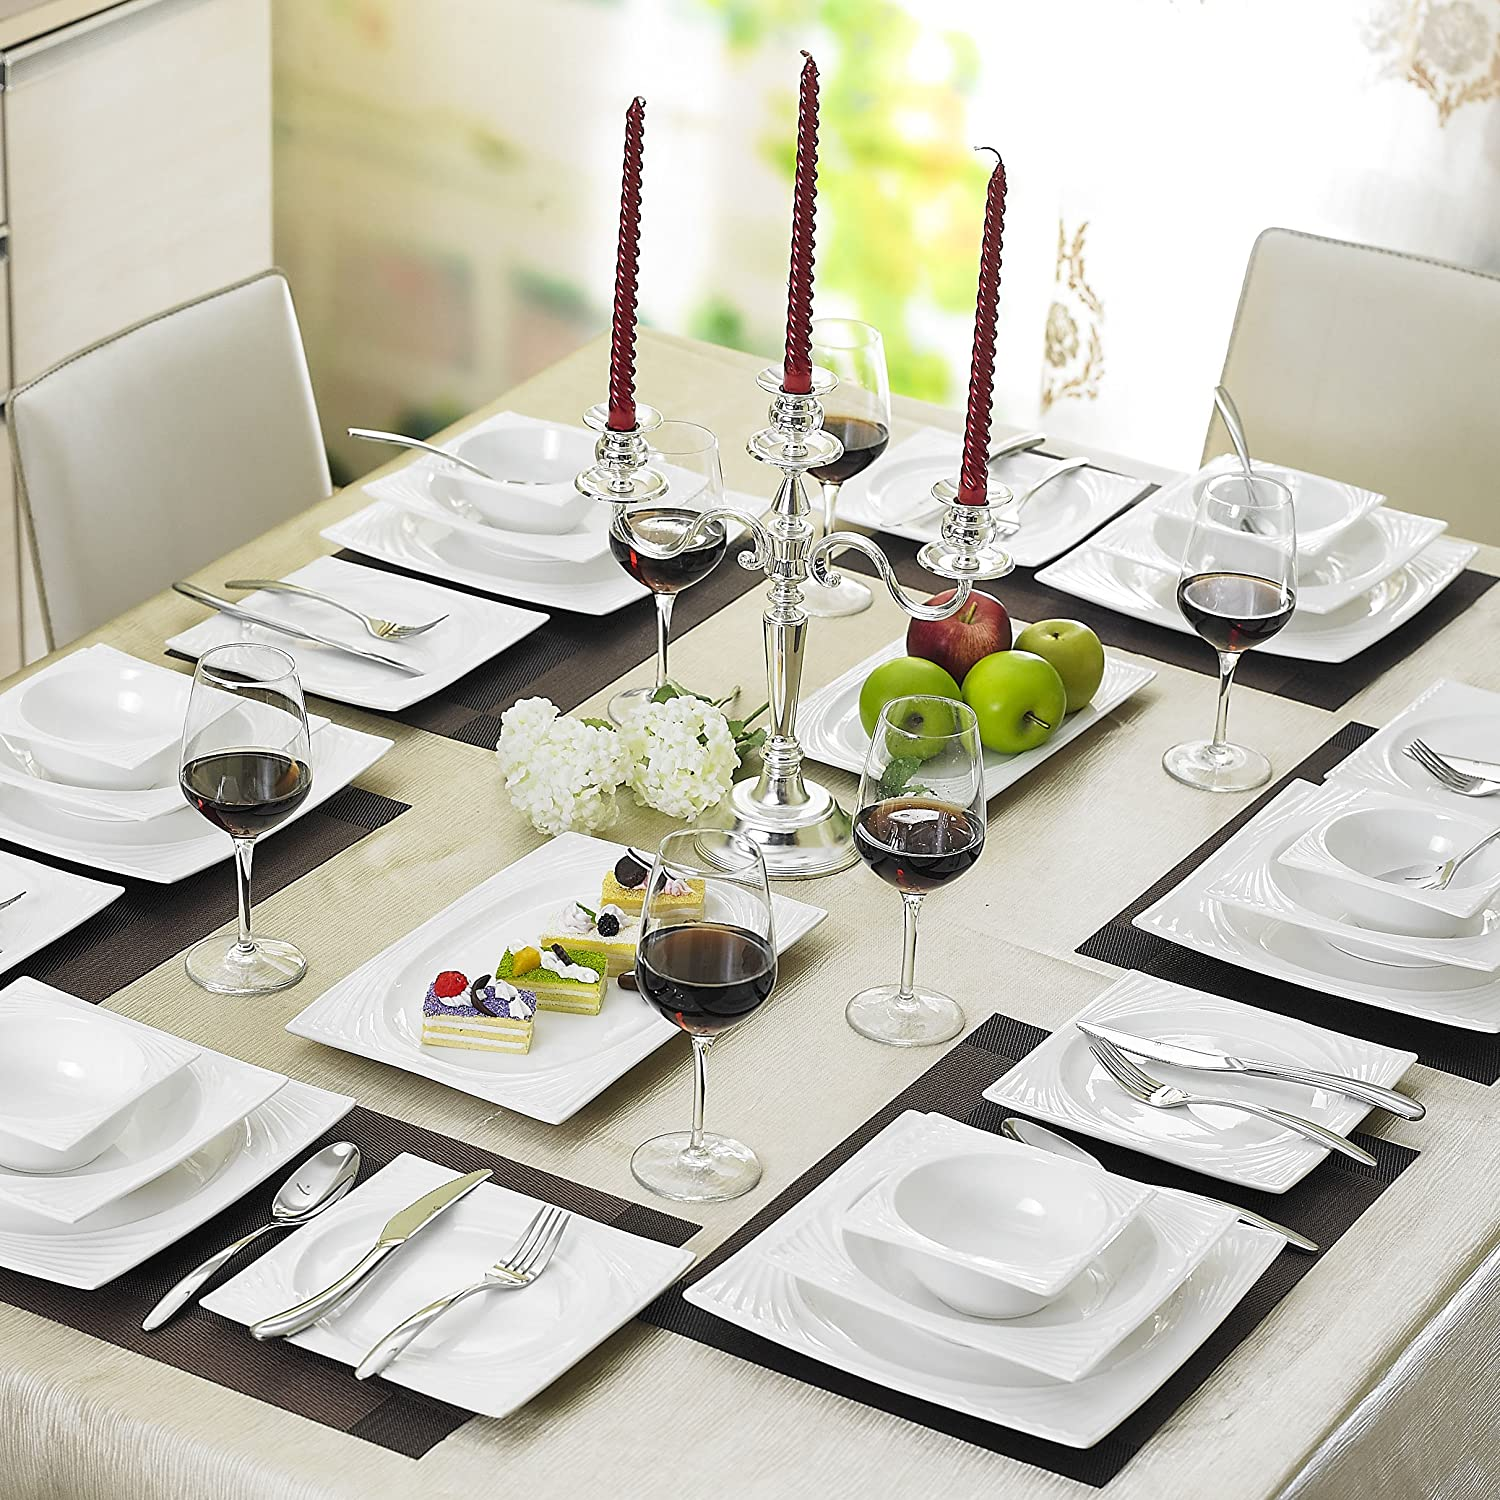 Malacasa Series Sabina 26-Piece China Ceramic Cream White Porcelain Dinner Set with 6-Piece Bowls 6-Piece Dessert Plates 6-Piece Soup Plates 6-Piece ... & Malacasa Series Sabina 26-Piece China Ceramic Cream White ...